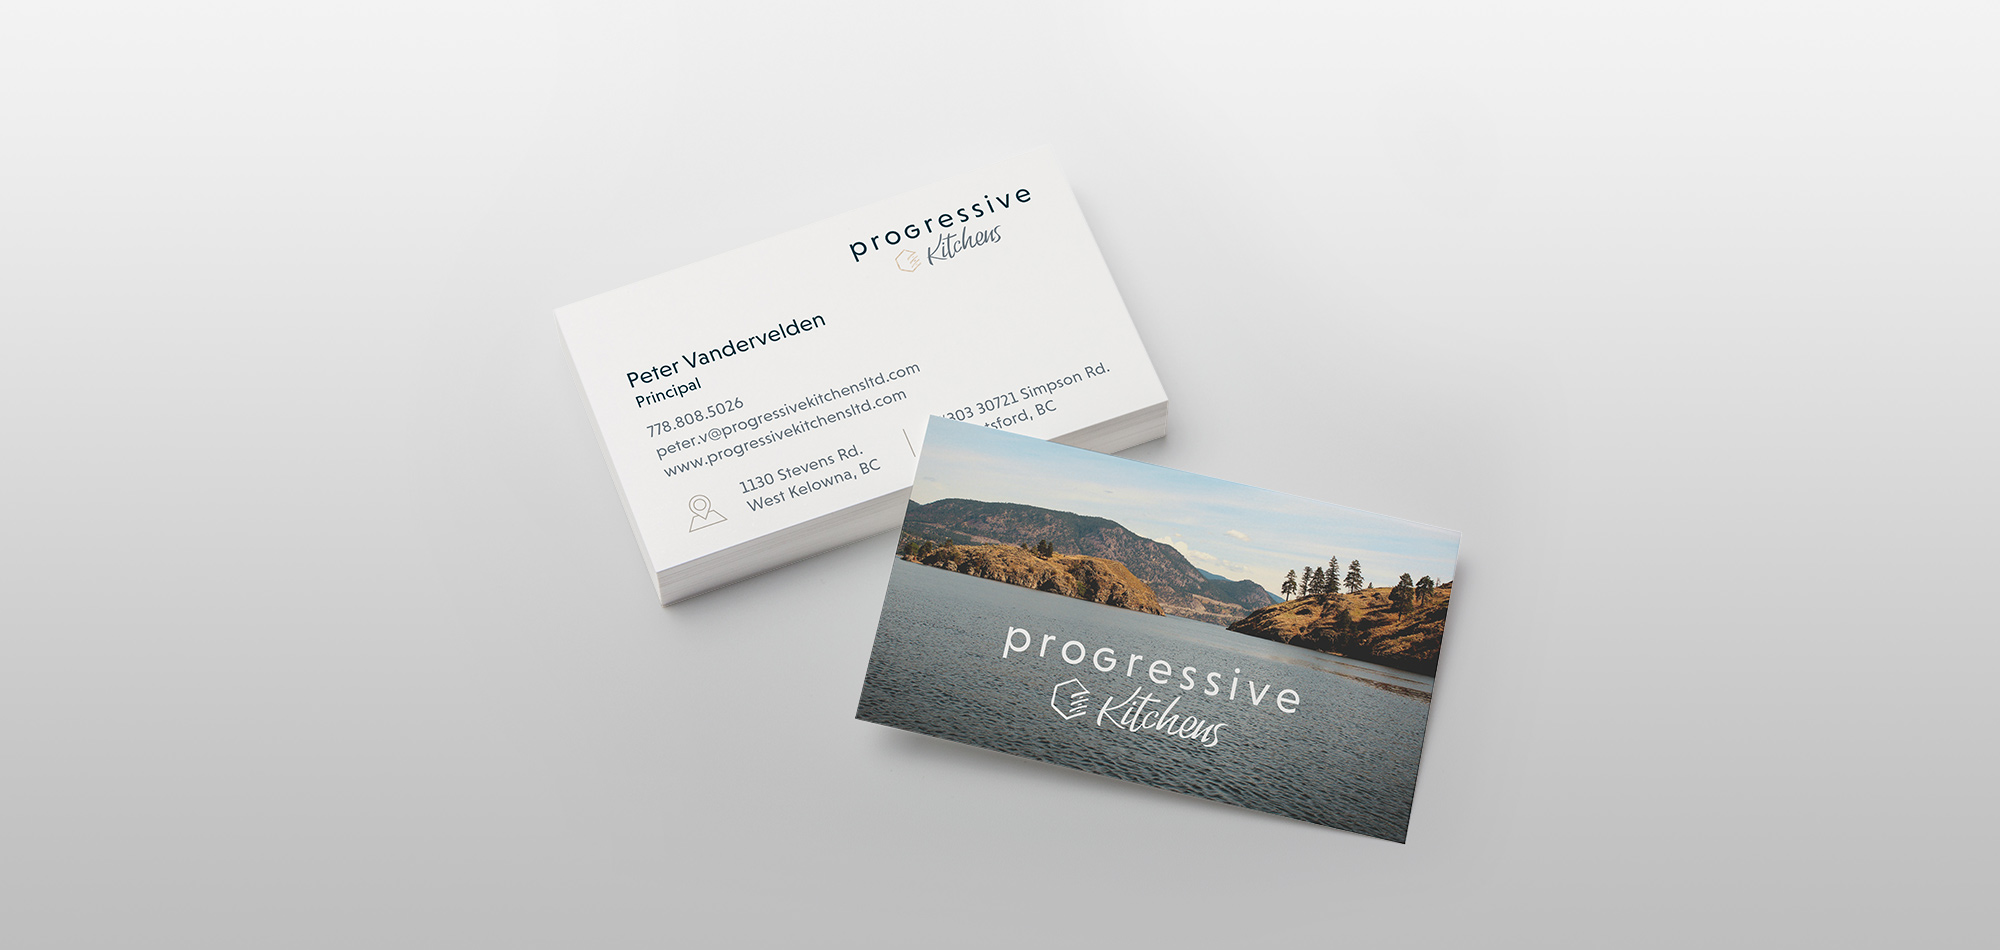 Print design sample of business cards.